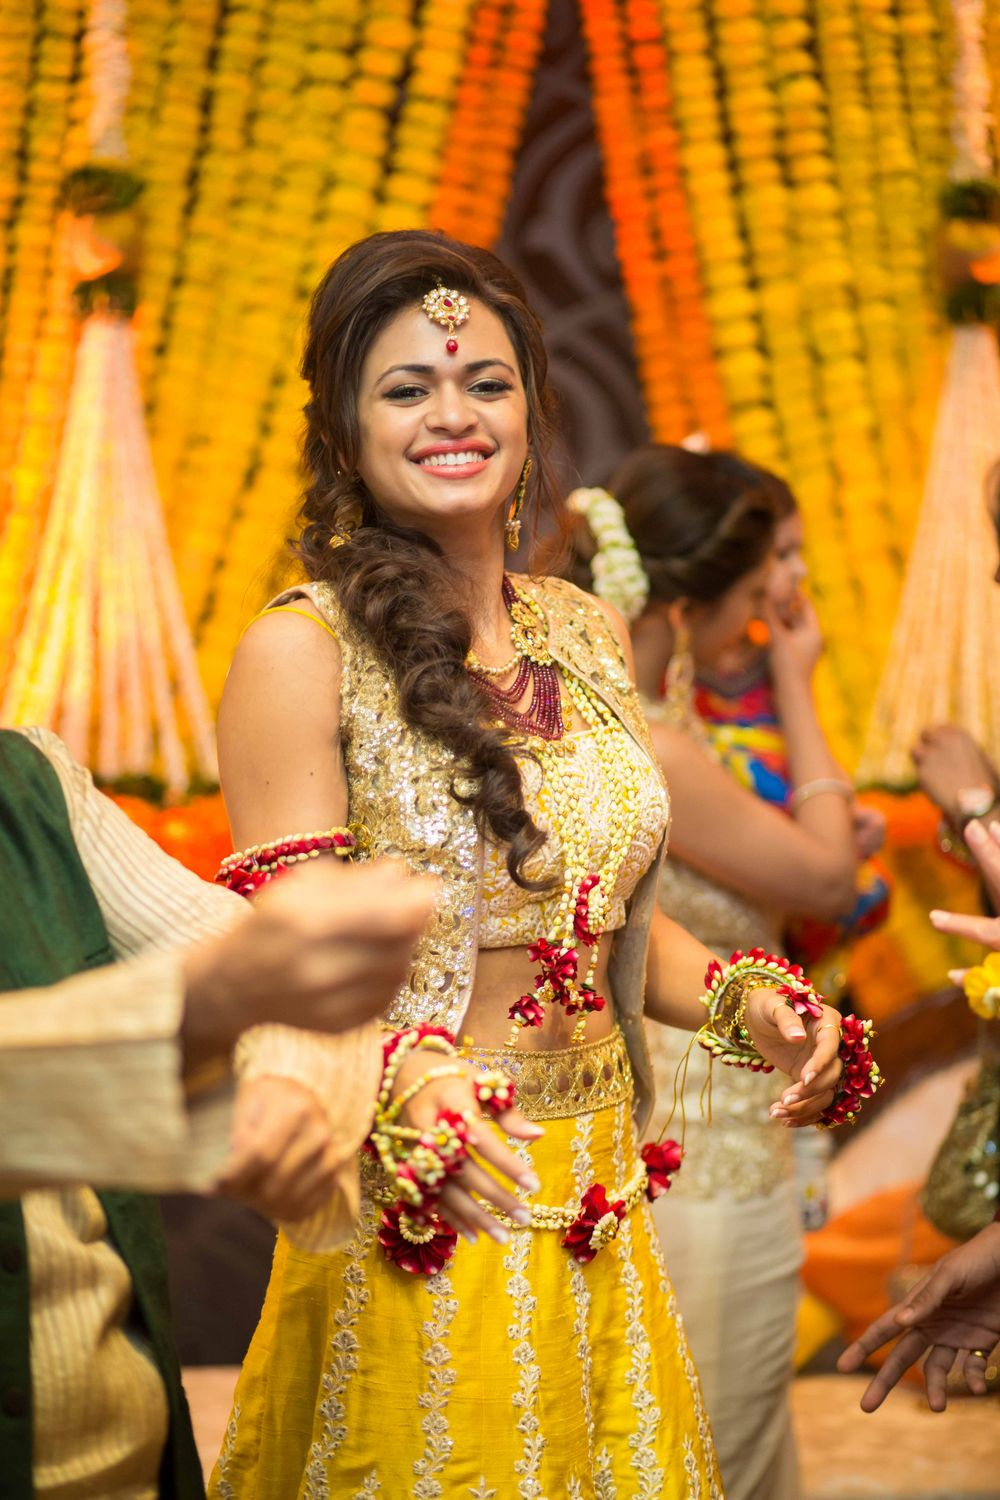 Photo From Anchal And Anand - By The Wedding Crasher